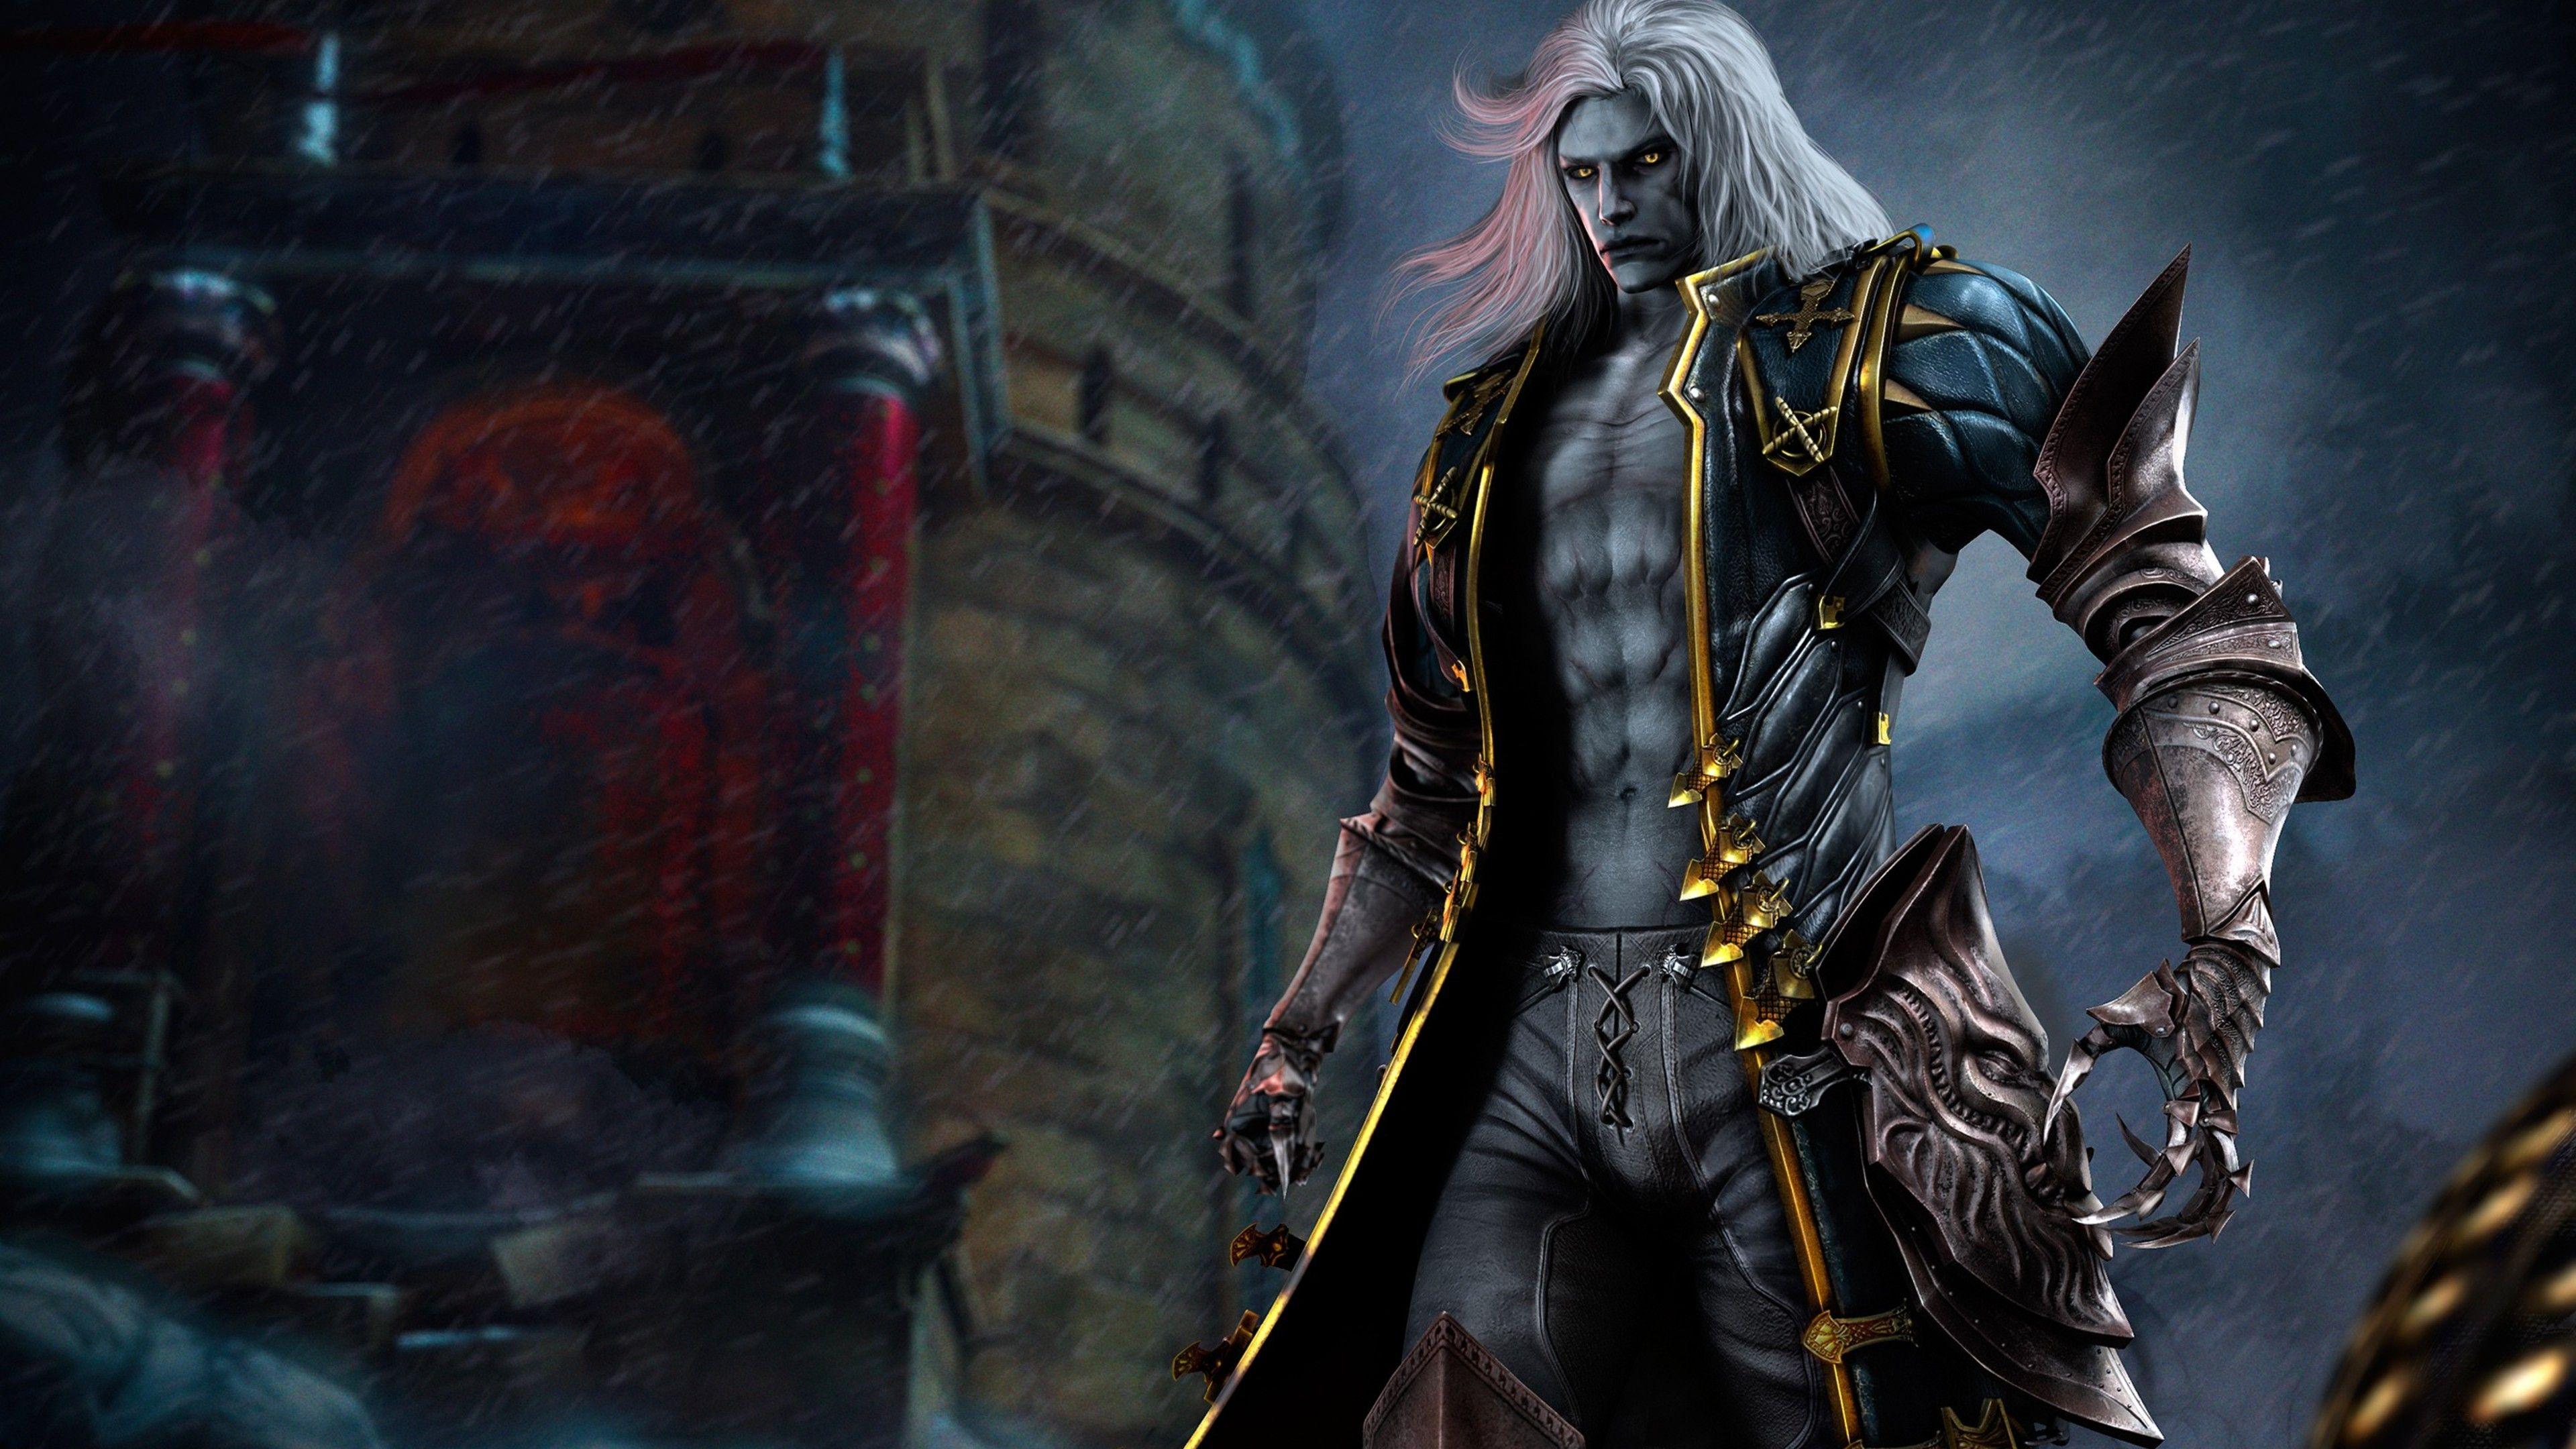 Alucard In Castlevania Lords Of Shadow 2 Wallpaper | Games ...